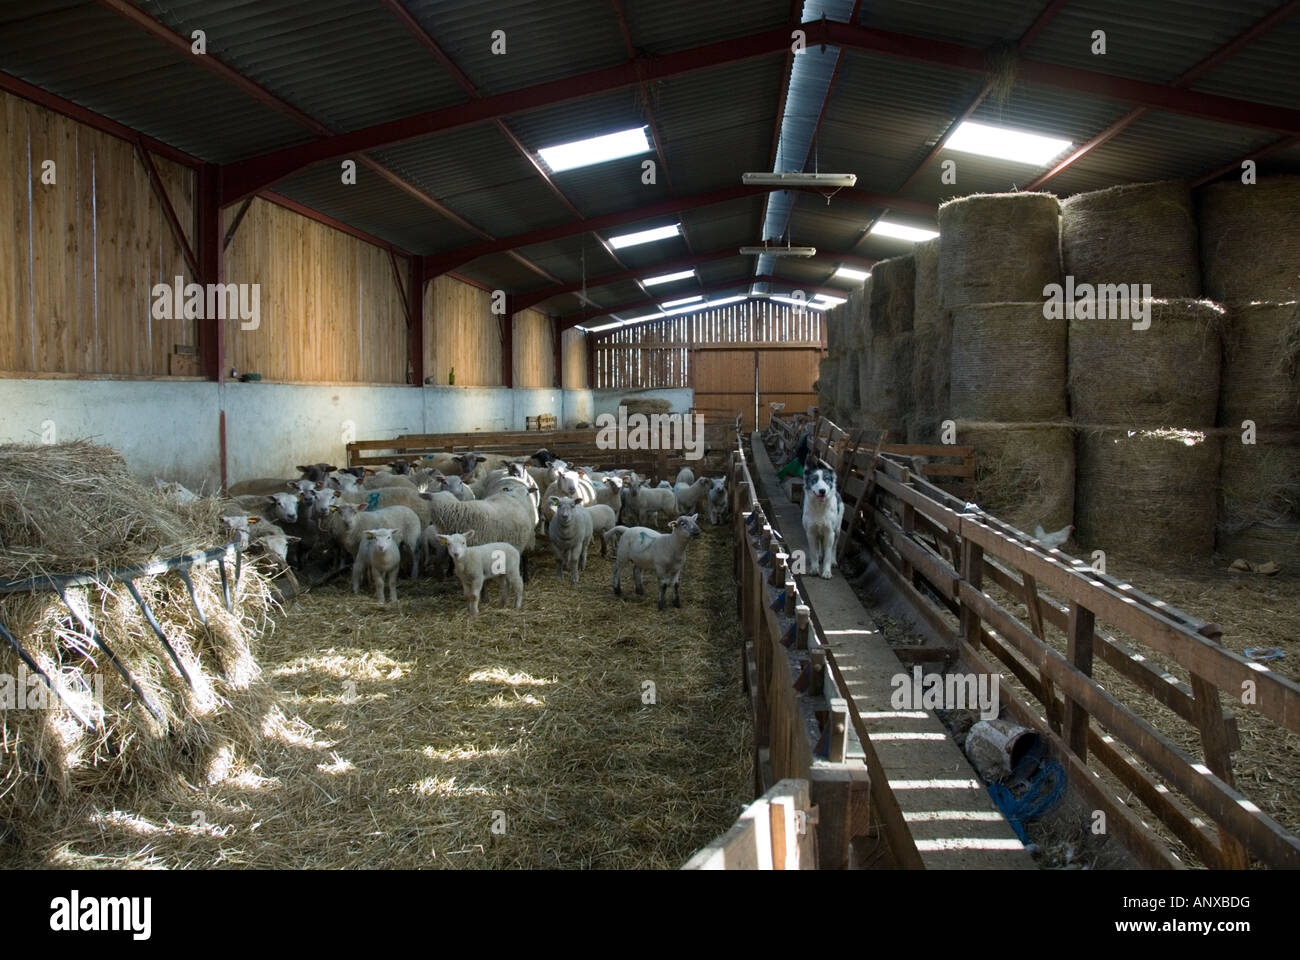 stock photo of lambs and sheep feeding on hay in a sheep barn the